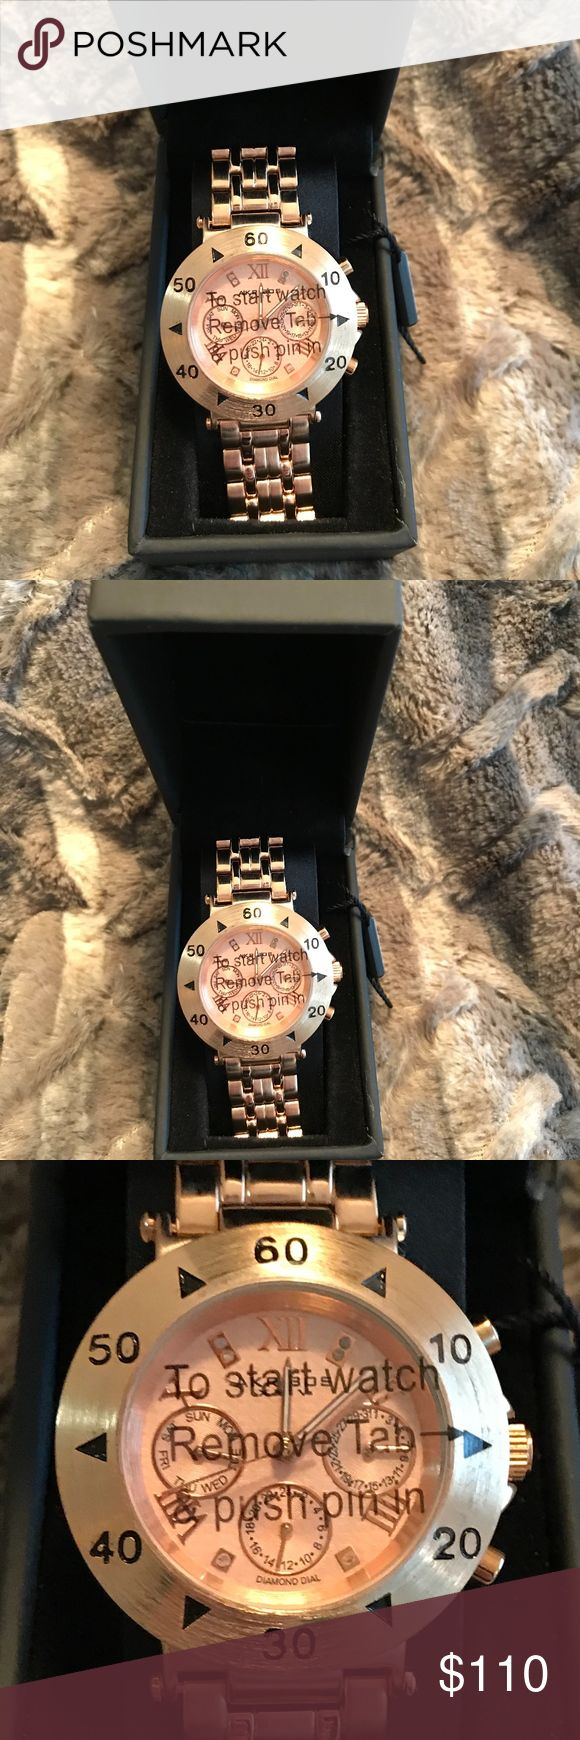 NWTLadies AKRIBOS XXIV Watch Gold & Pale pink face Brand New with tags! Akribos XXIV Ladies Gold Watch.  The face is pale pink and has 6 Diamond Accents. There are Roman Numerals for the numbers 2,4,8,10,12. The Akribos features not only the hours and minutes, but it has a dial for 24 hour (military time).  There are also separate dials for the month and the date. It hands glow in the dark and there is a second hand. The instructions along with the registration for the 2 yr warranty and…